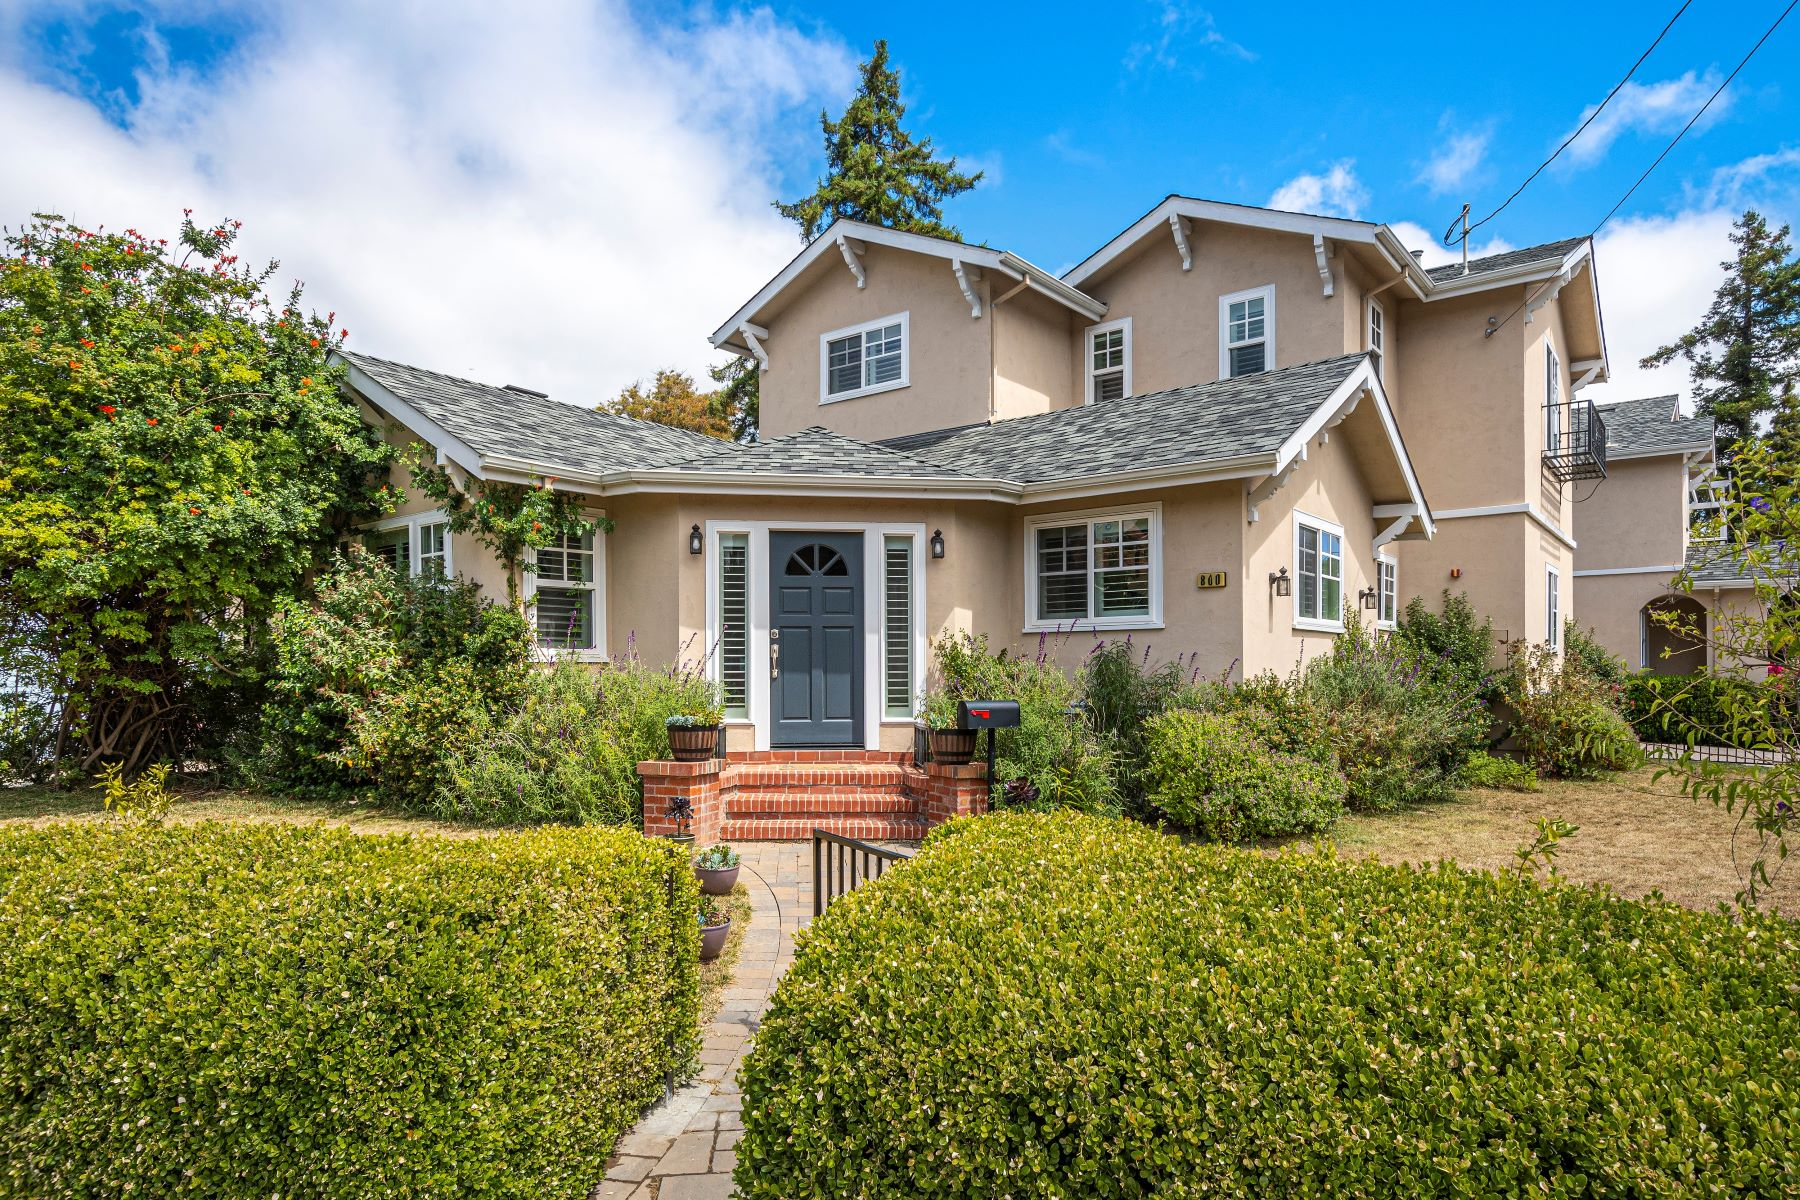 townhouses for Active at Stylish Semi-Detached Home 800 Prospect Row #1 San Mateo, California 94401 United States